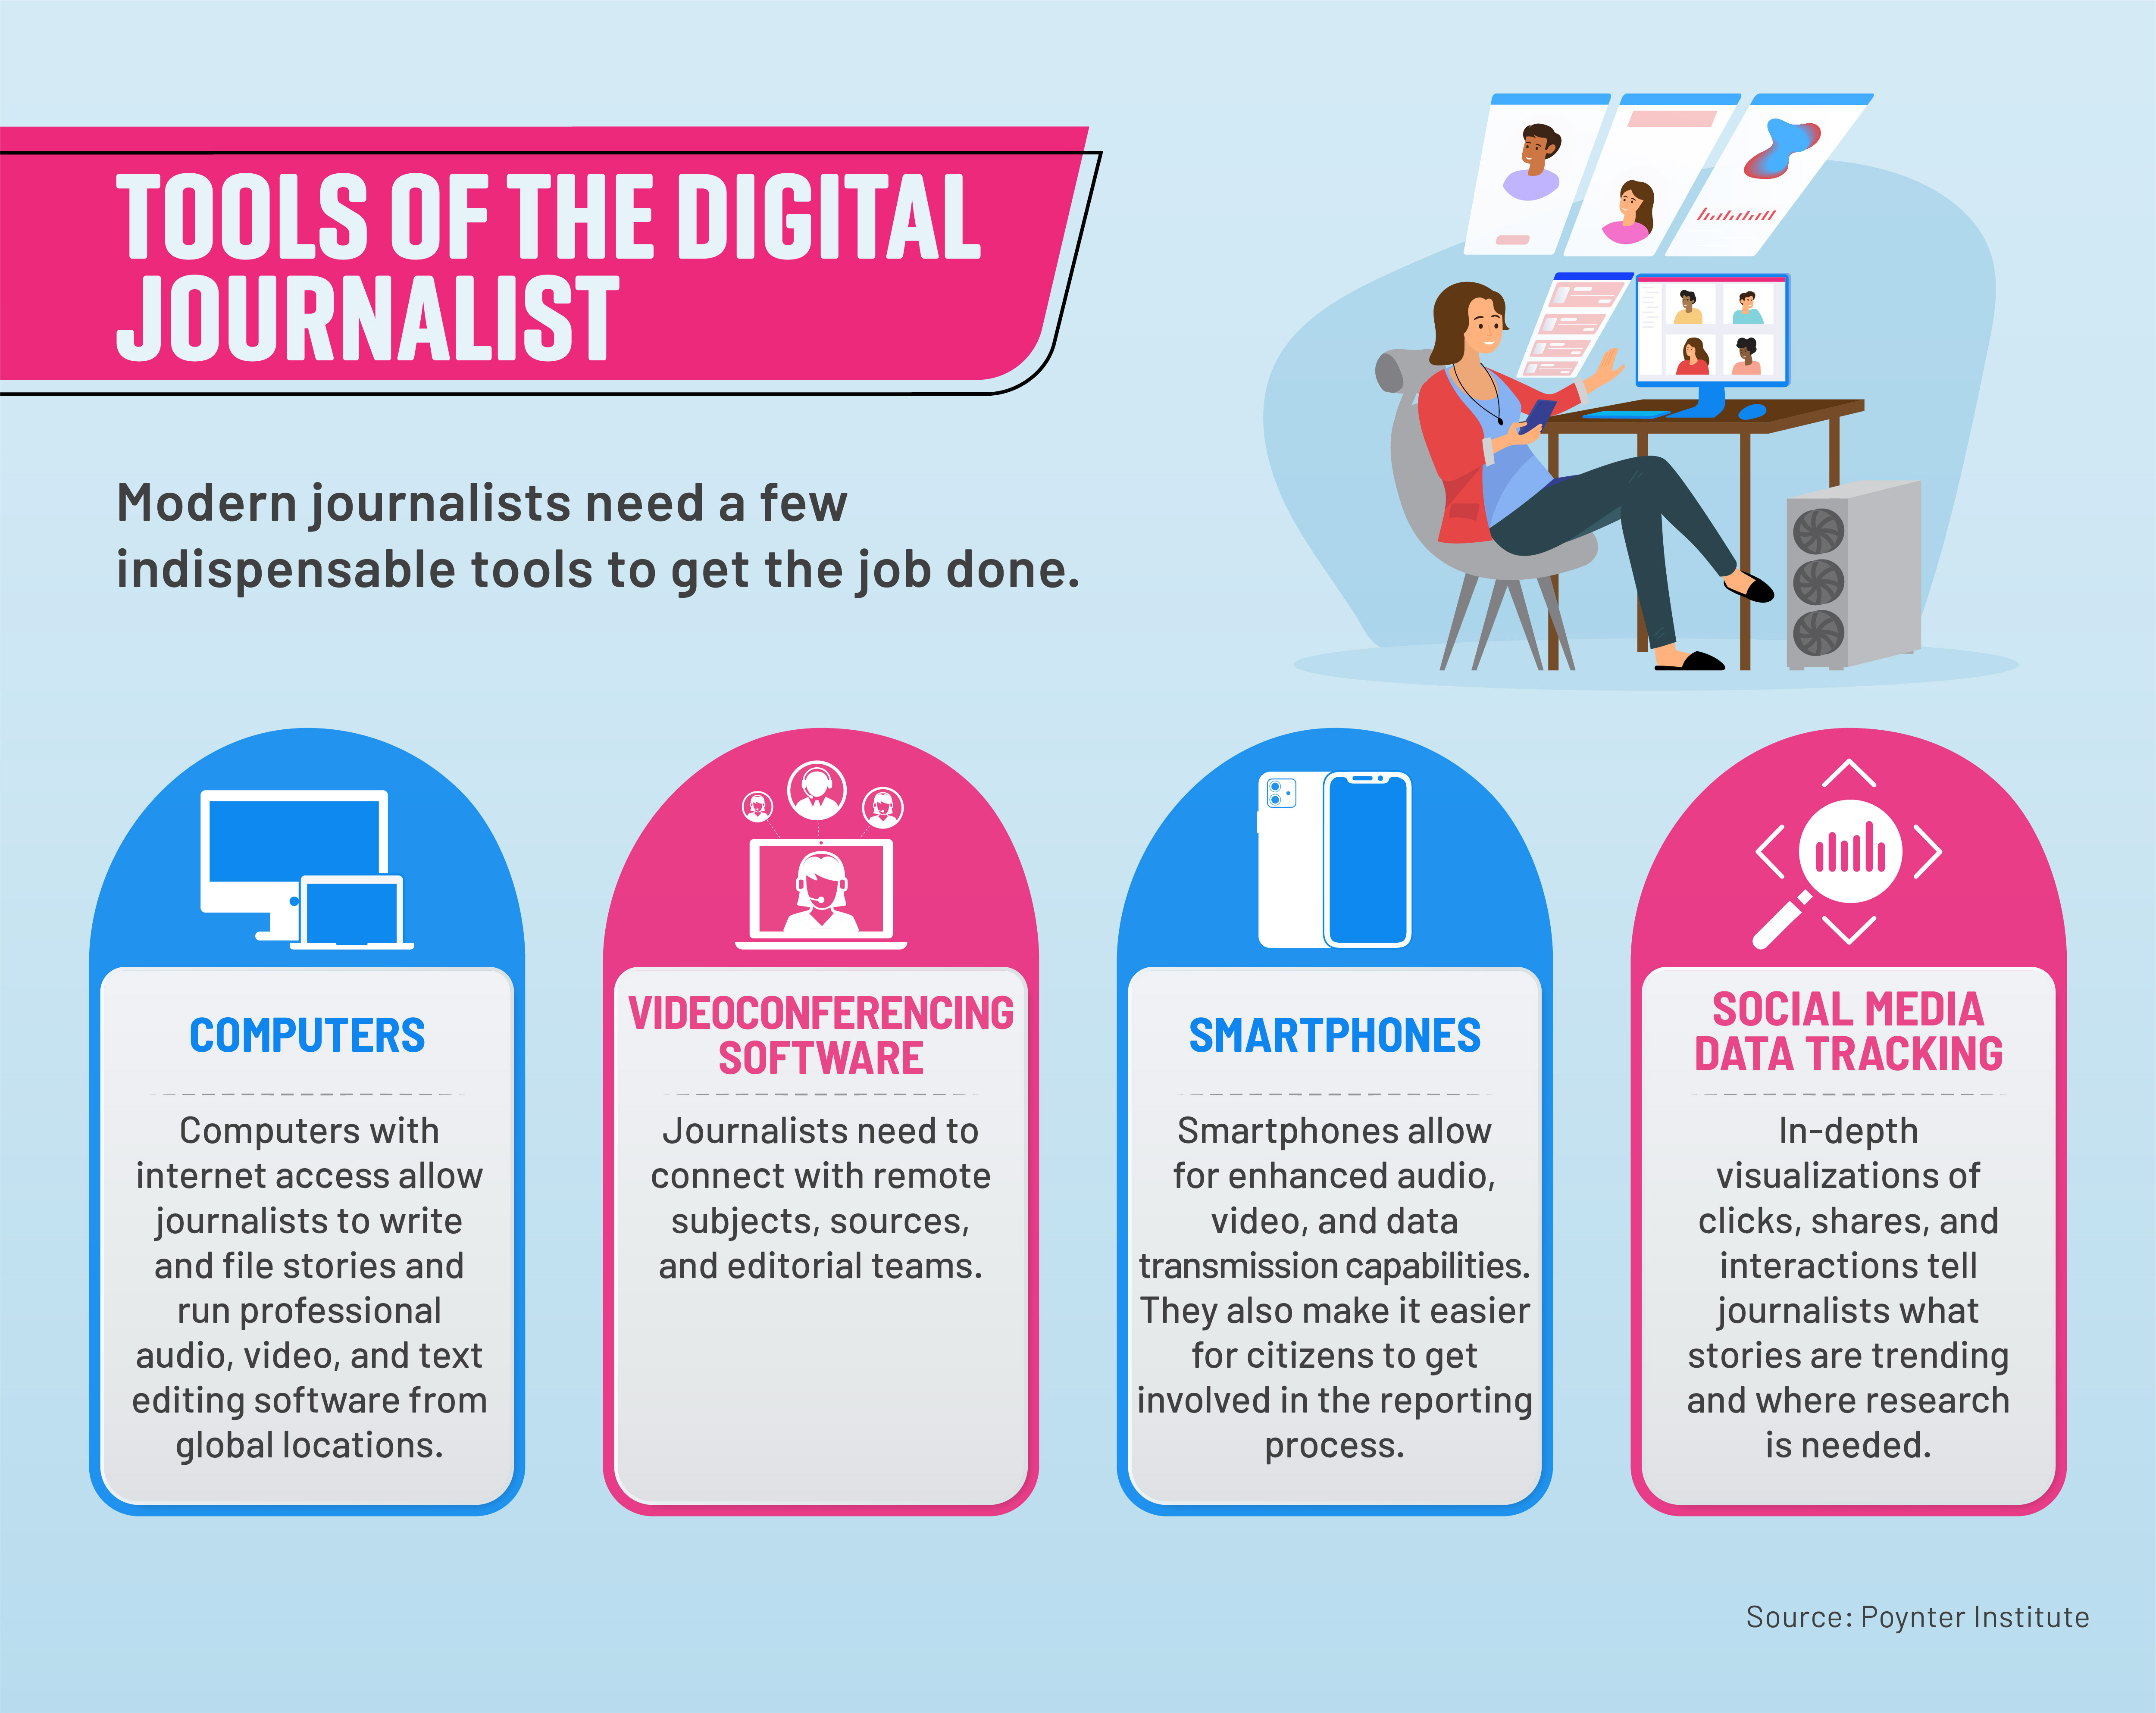 Key tools journalists rely on to report stories in the digital era.